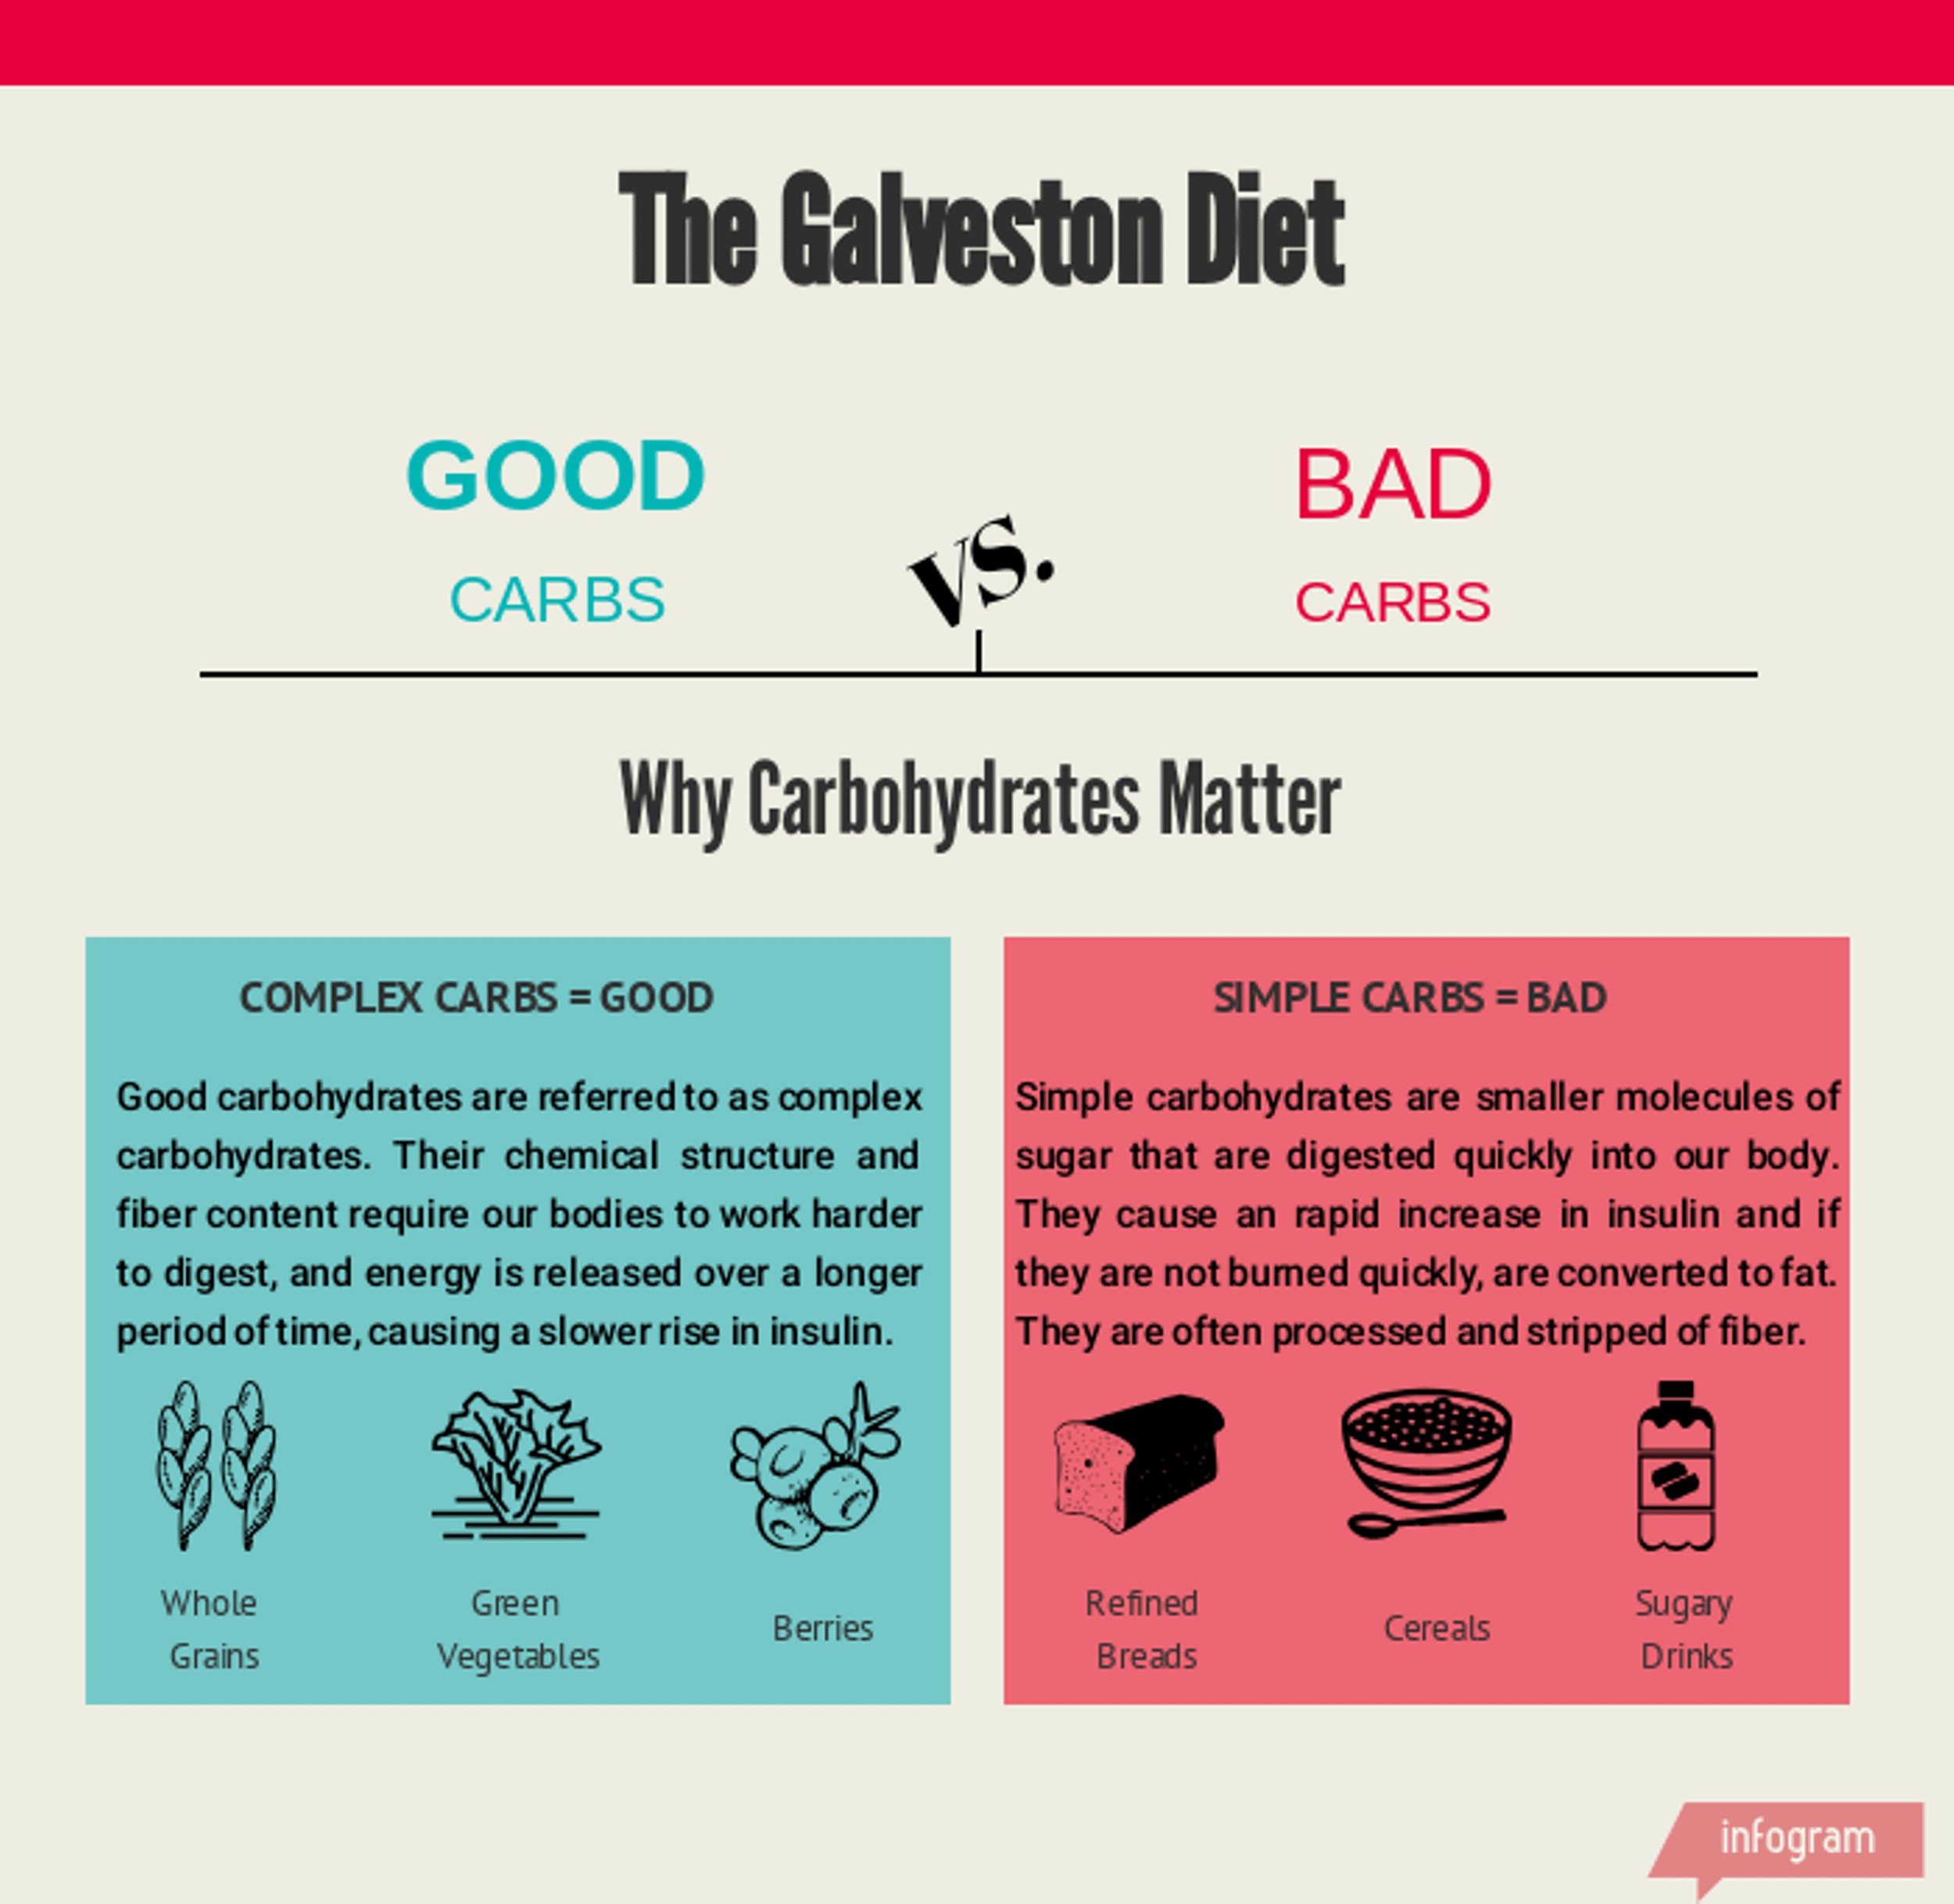 Galveston diet review